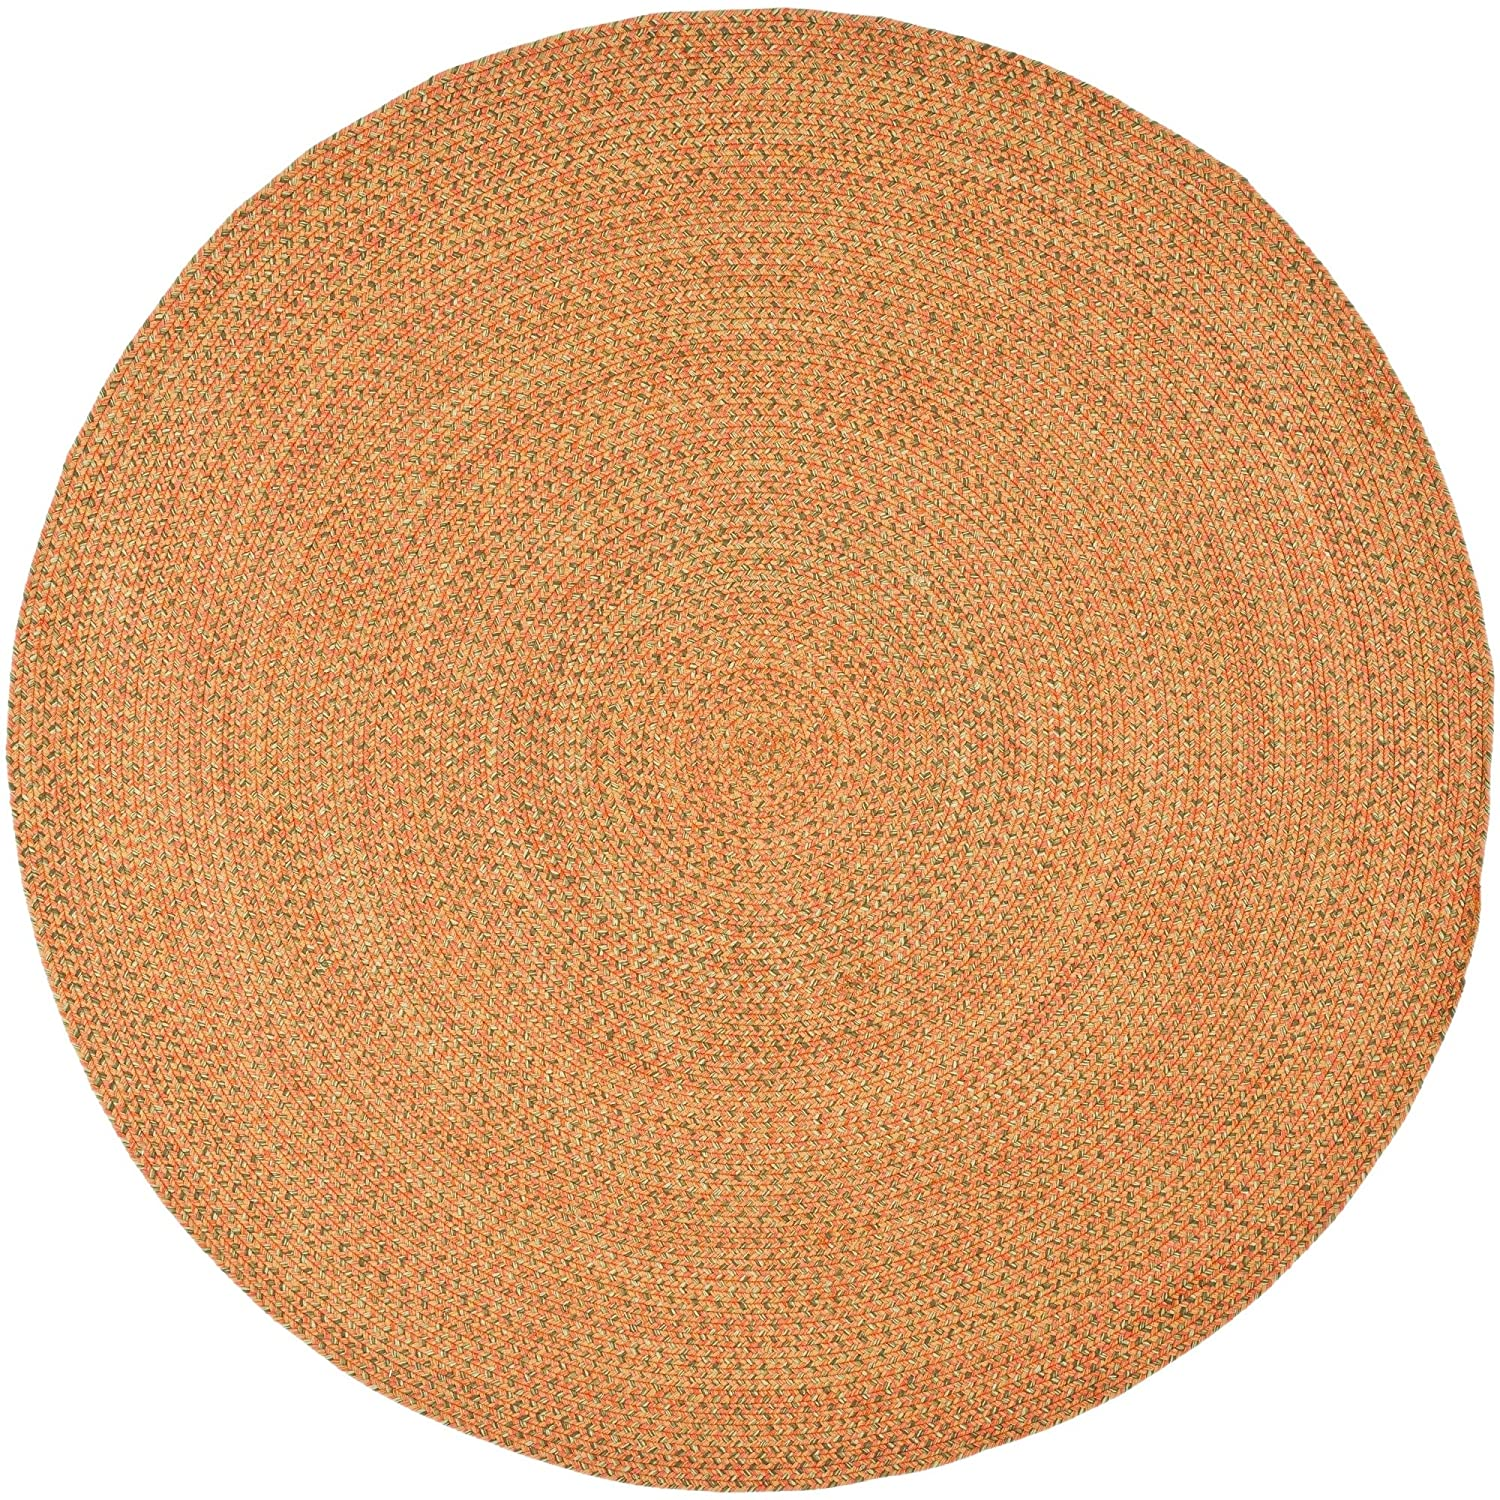 Safavieh Braided Collection BRD166A Hand Woven Multicolored Round Area Rug, 6 feet in Diameter (6' Diameter) BRD166A-6R